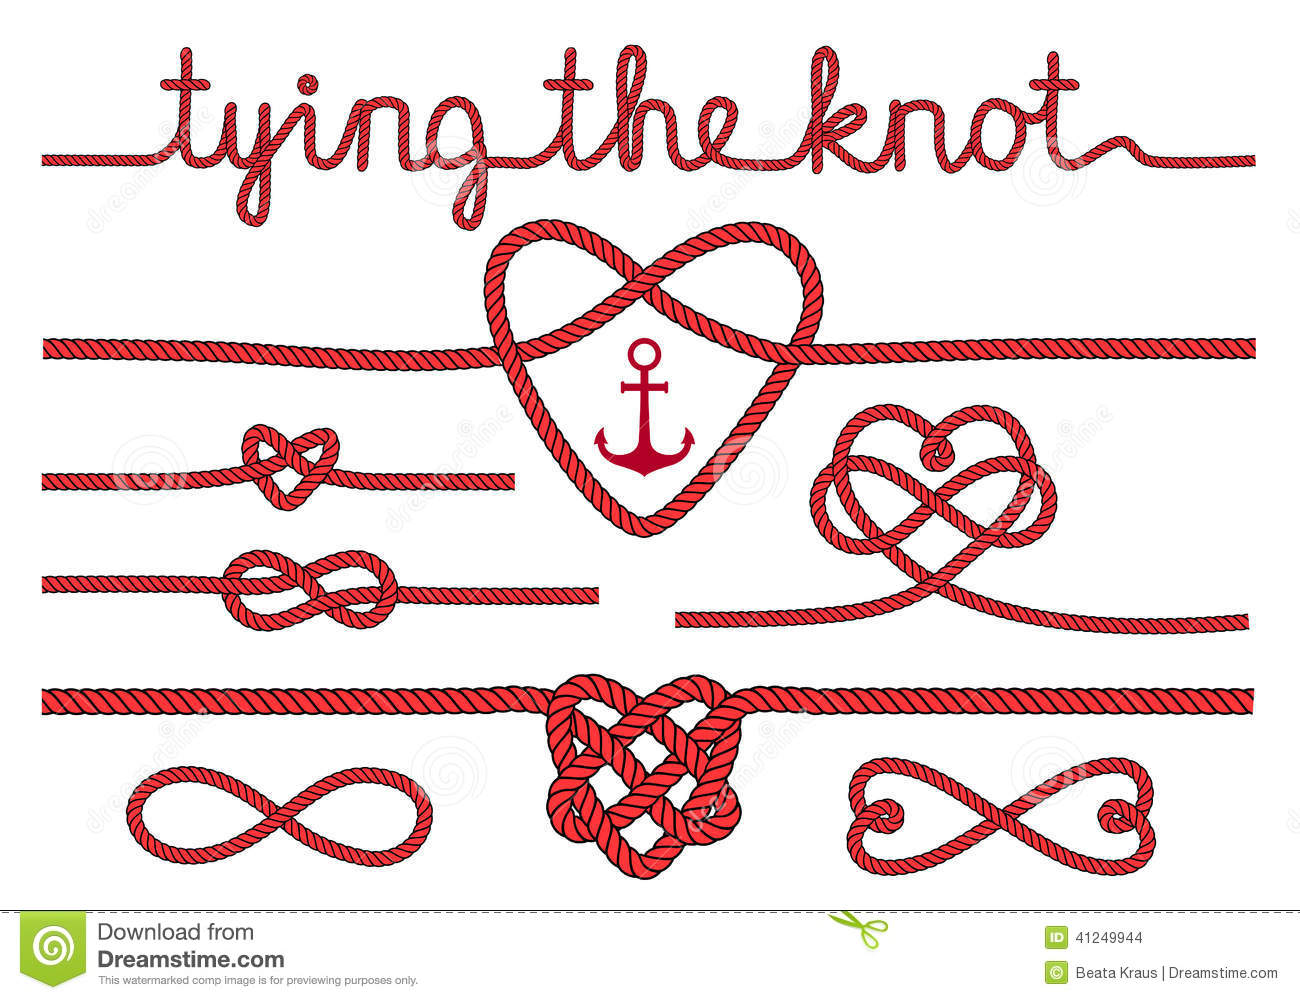 Love knot clipart.